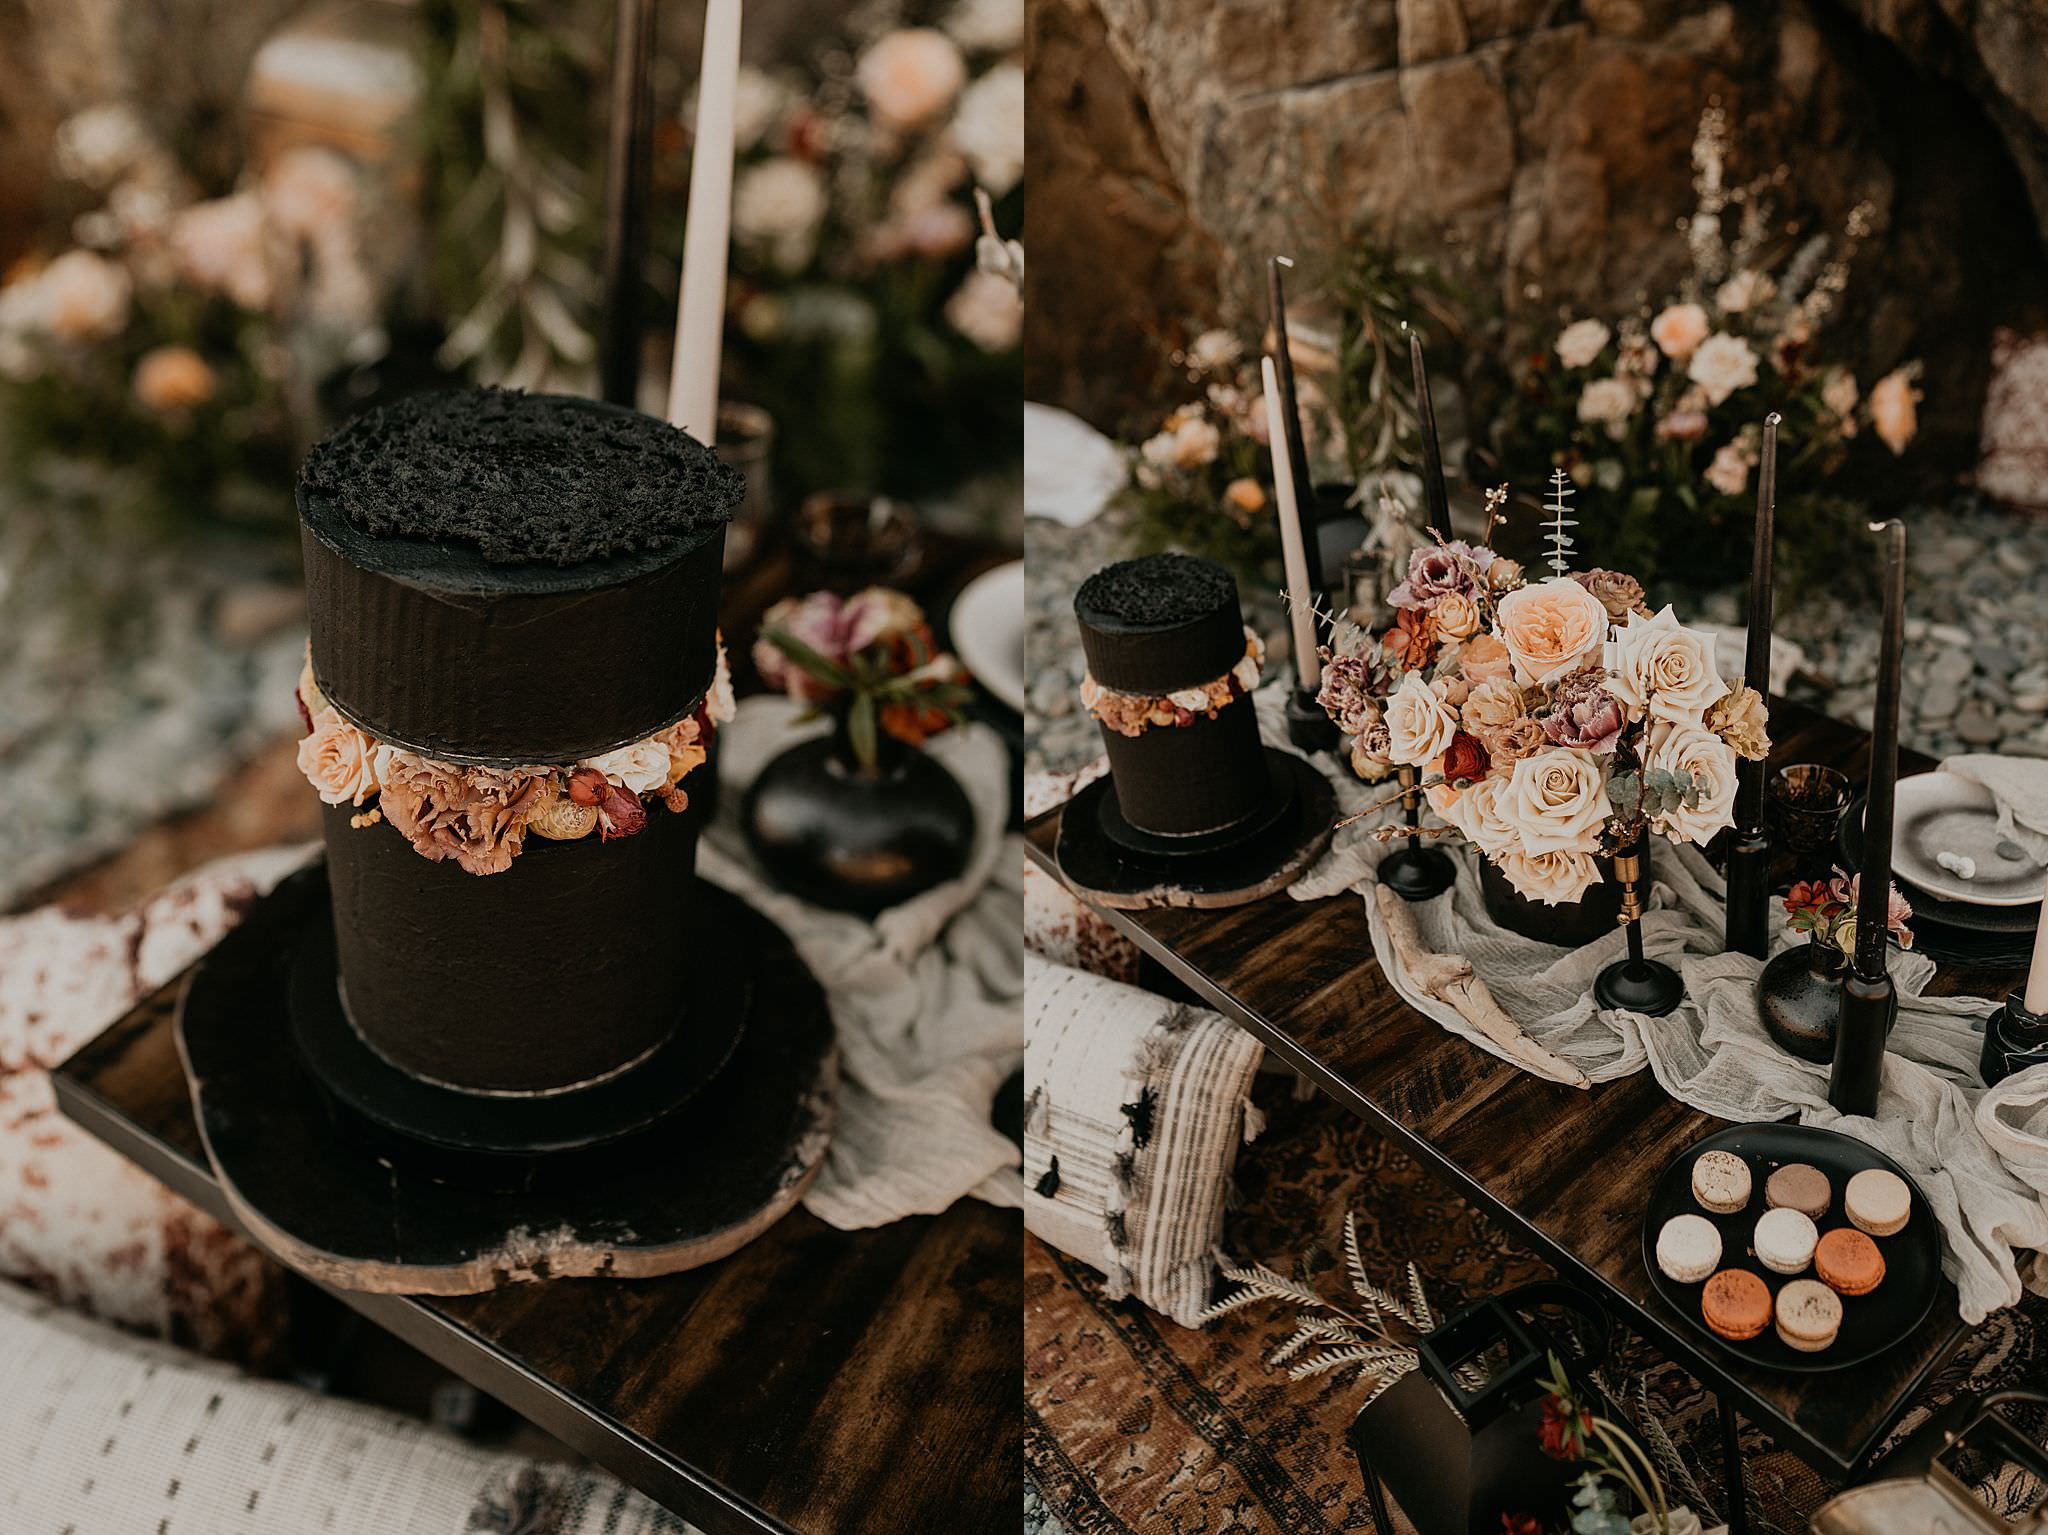 Beautiful wedding details with cakes flowers and decor for beach wedding at Ruby